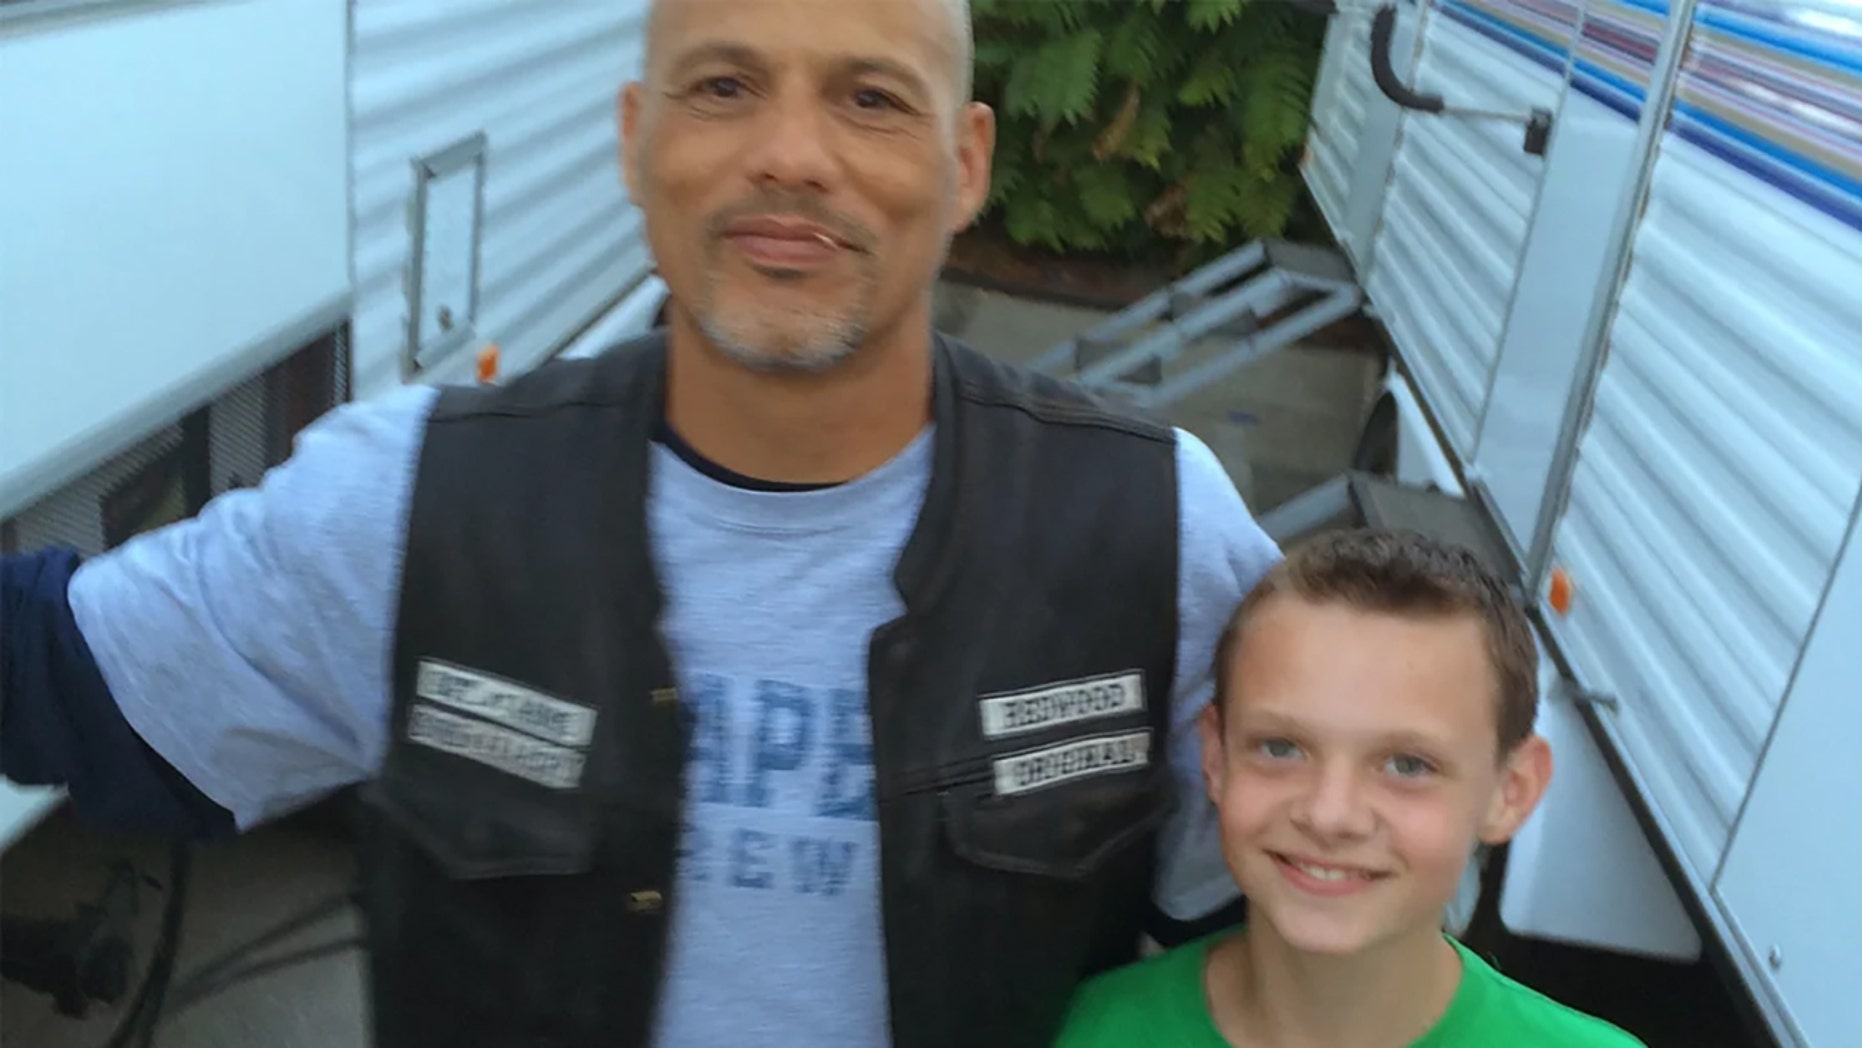 """""""Sons of Anarchy"""" actor David Labrava announced Wednesday that his 16-year-old son, Tycho, committed suicide after suffering from depression."""